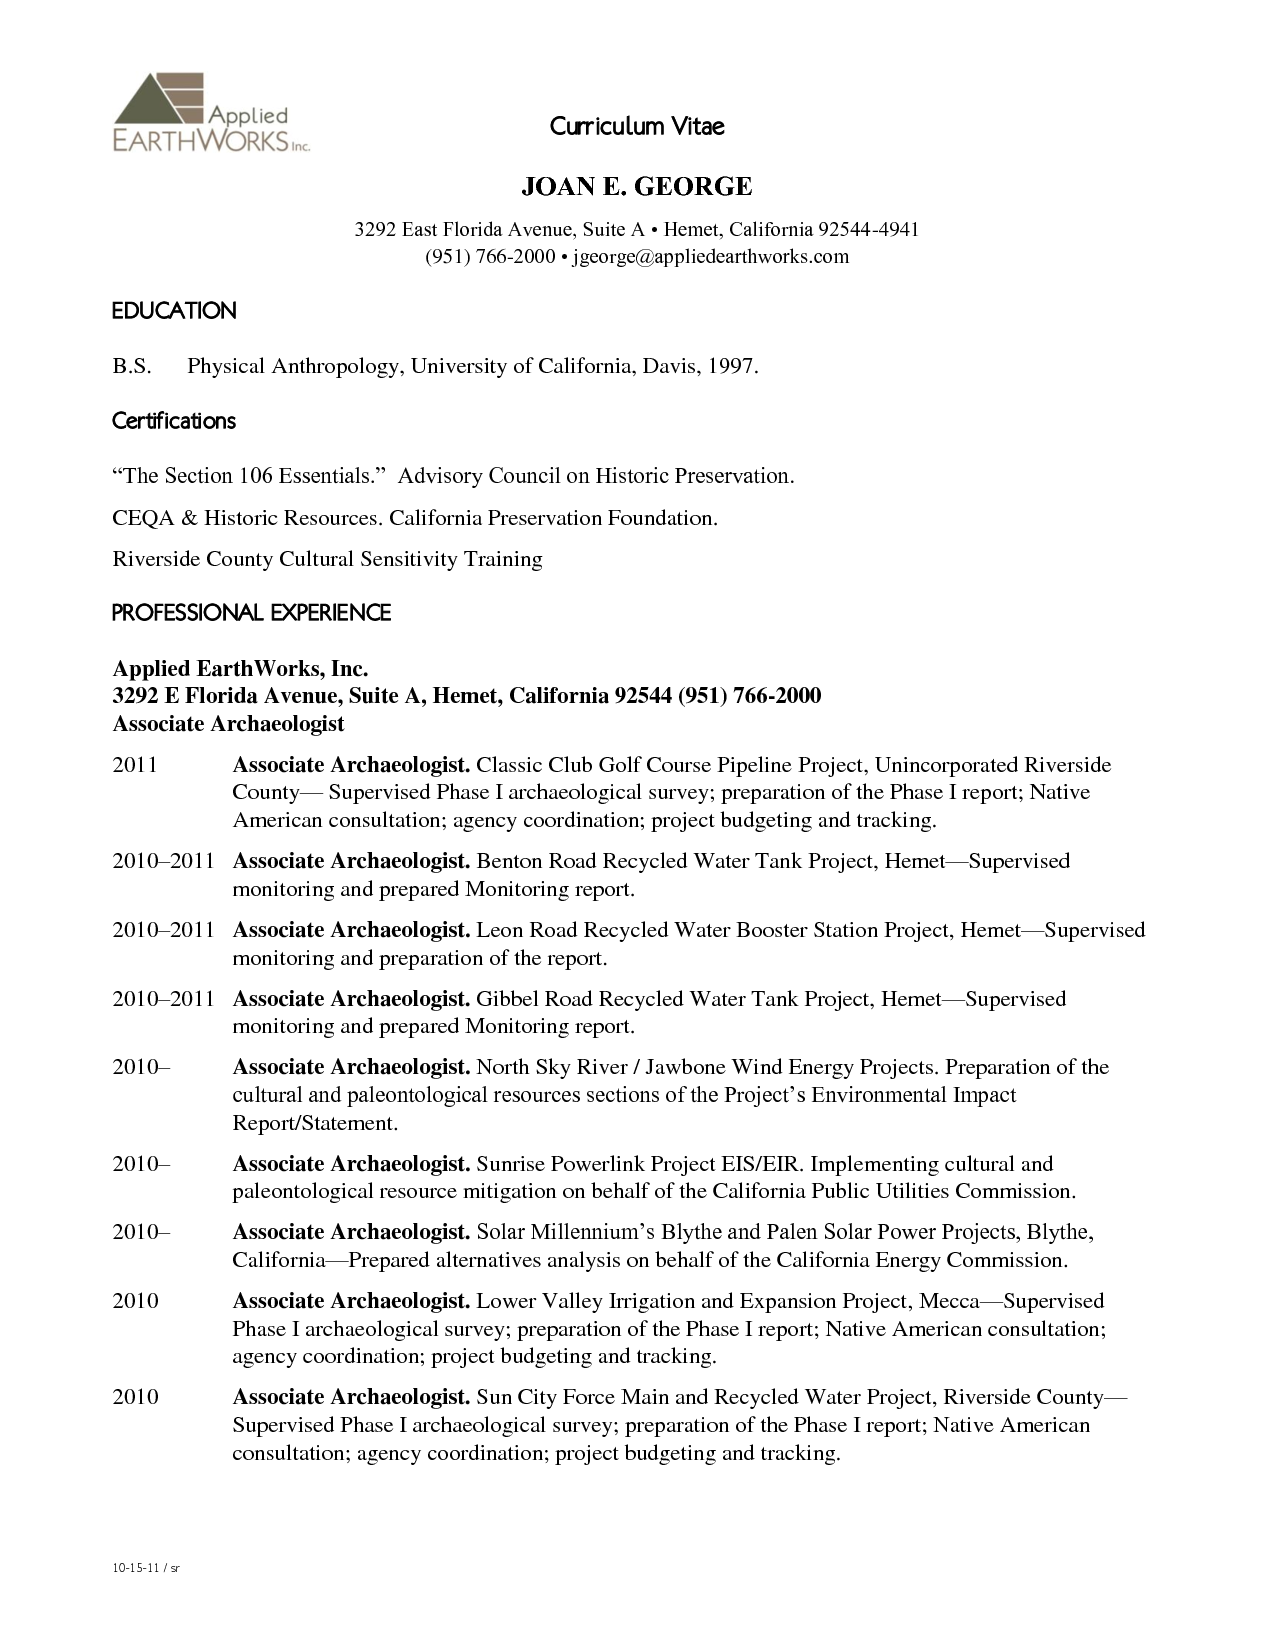 Resume Template Download Pdf Resume Template Download Pdf, fill in ...